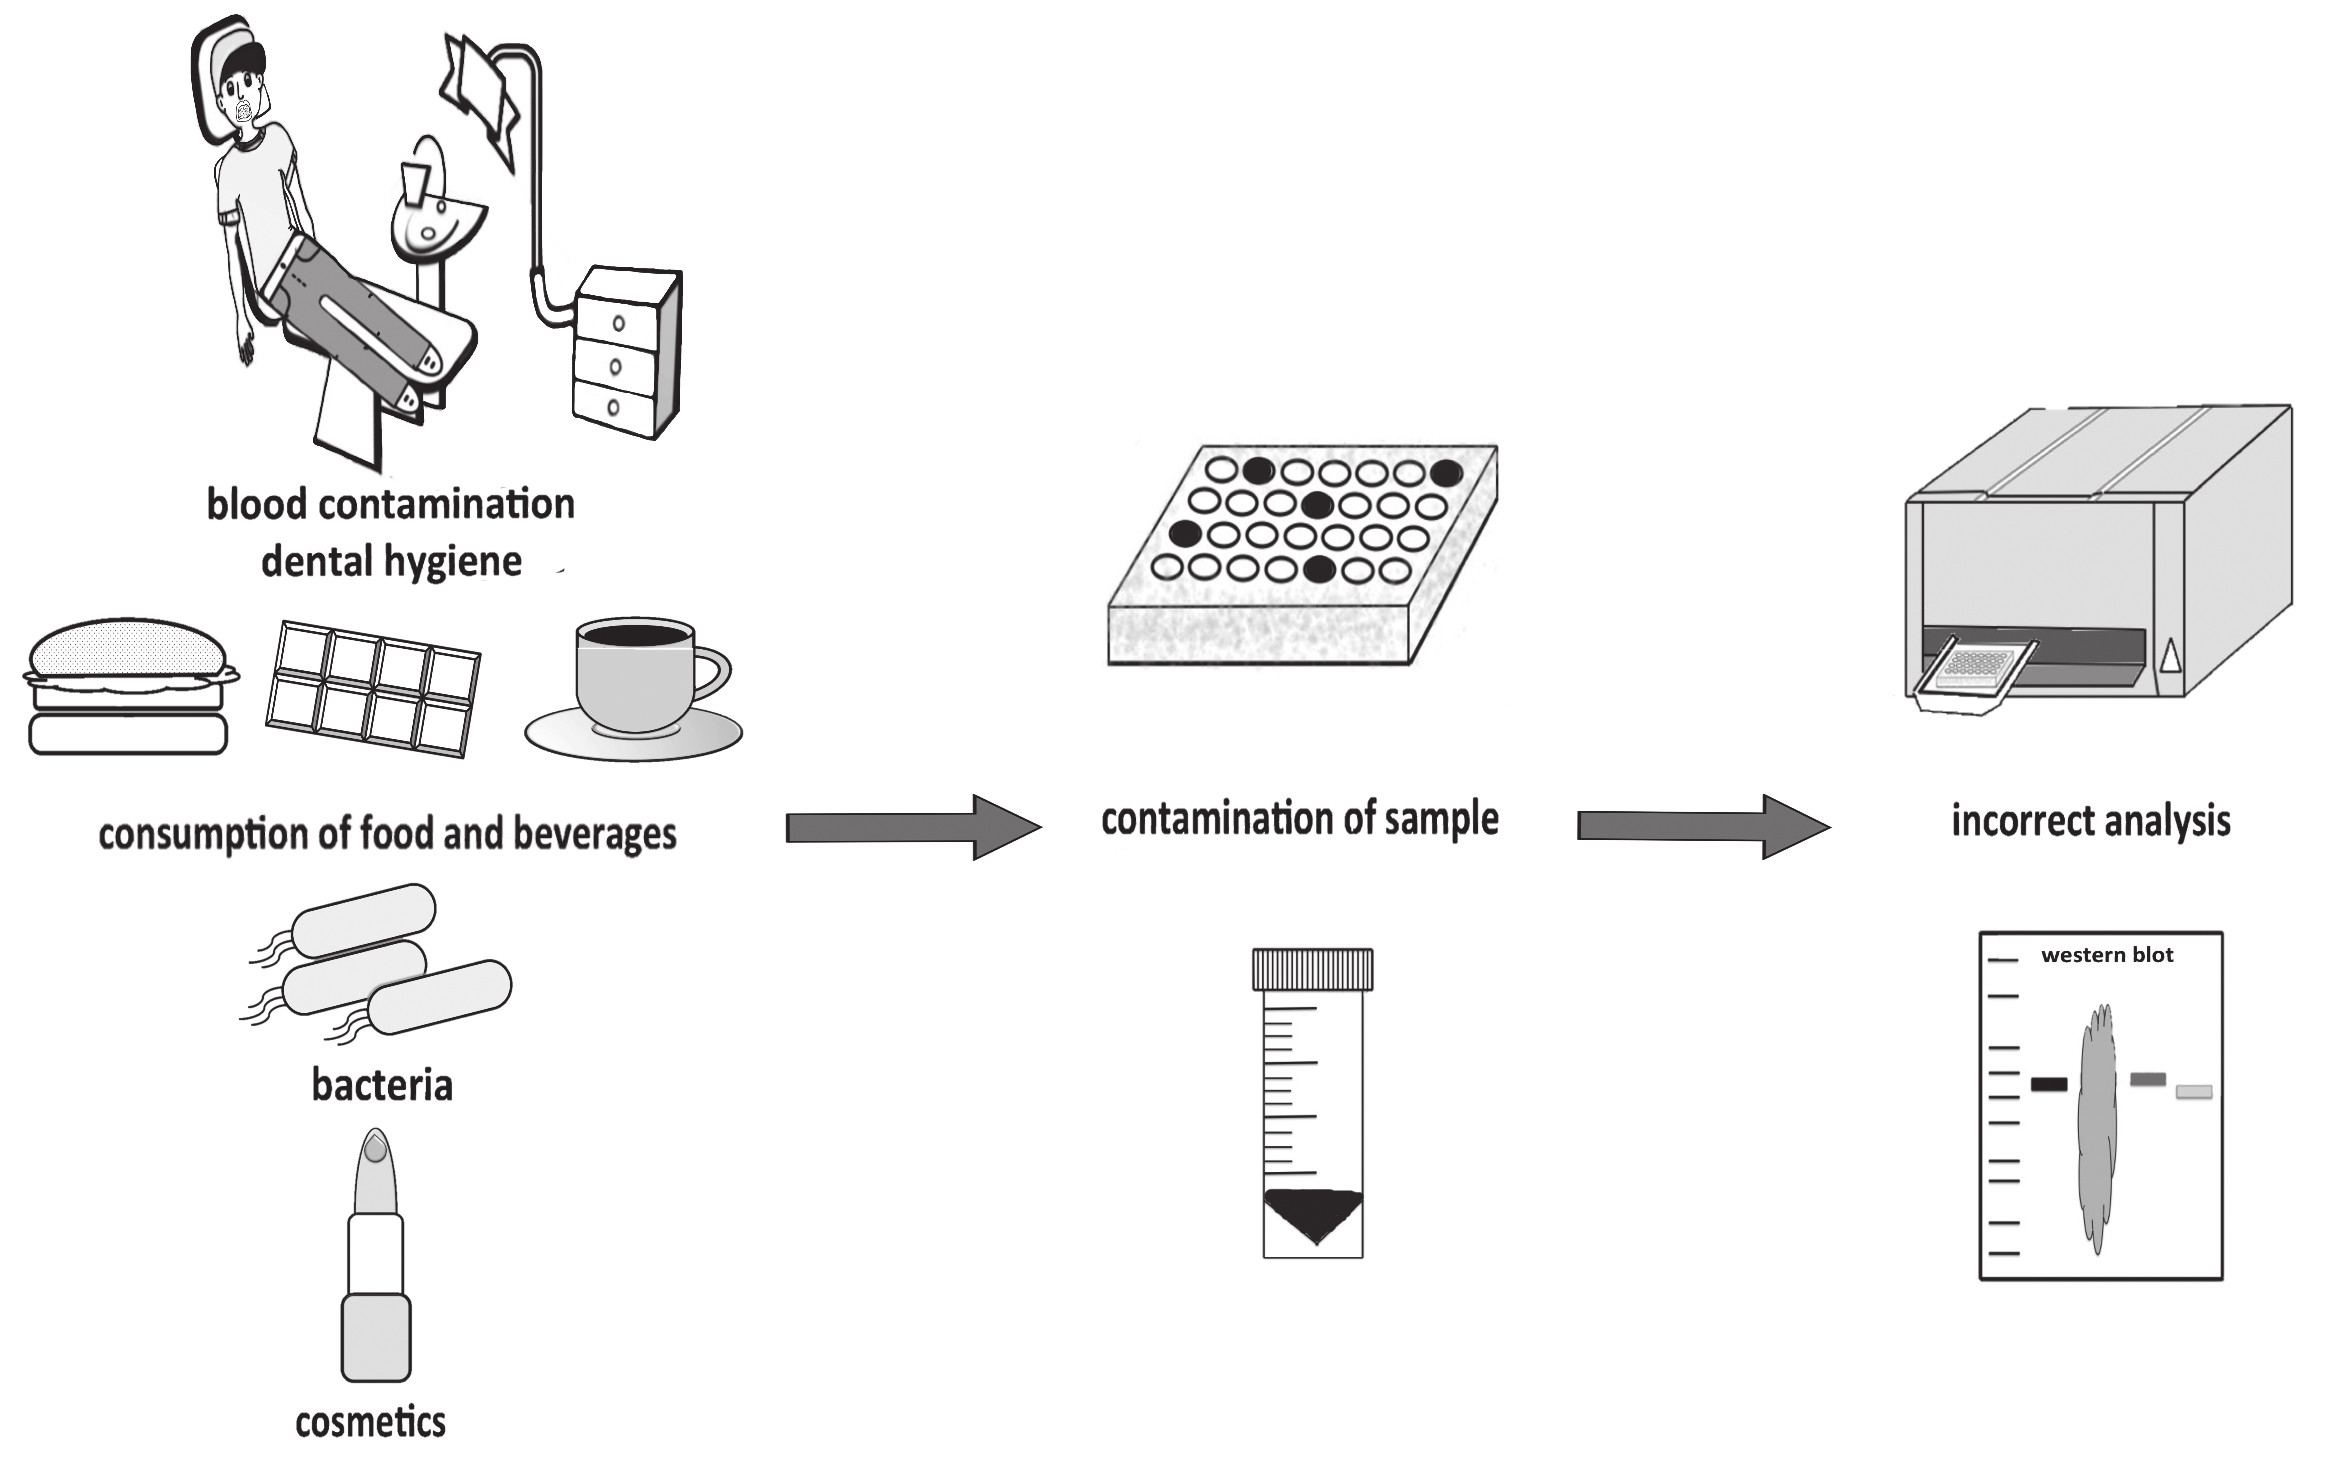 Contamination of saliva samples and its impact on analysis.